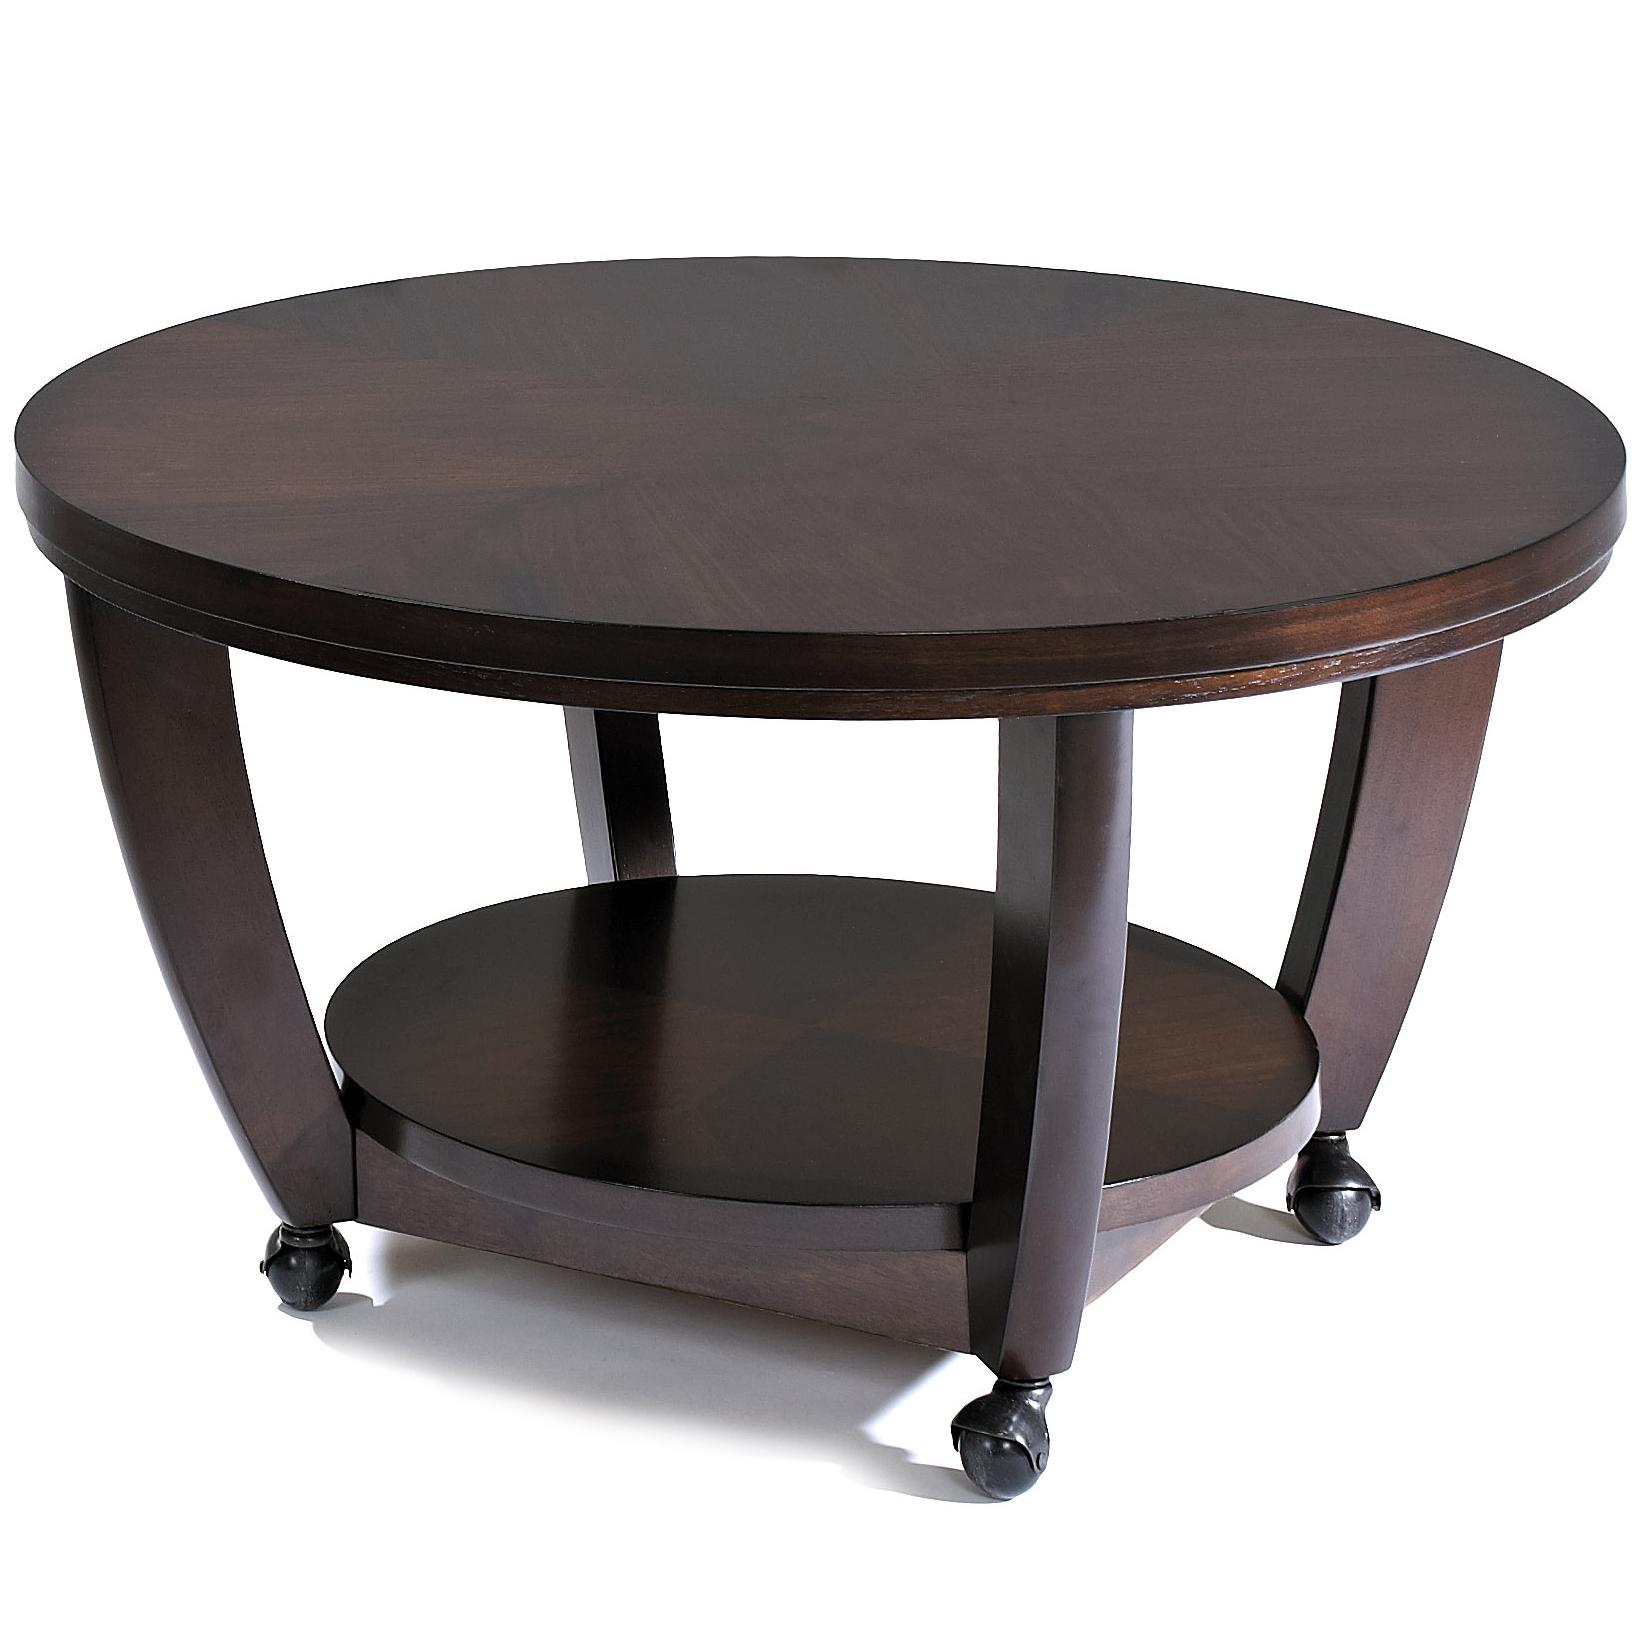 Morris Home Furnishings Hayden  Dolan Court Cocktail Table - Item Number: 764-820 CTBL